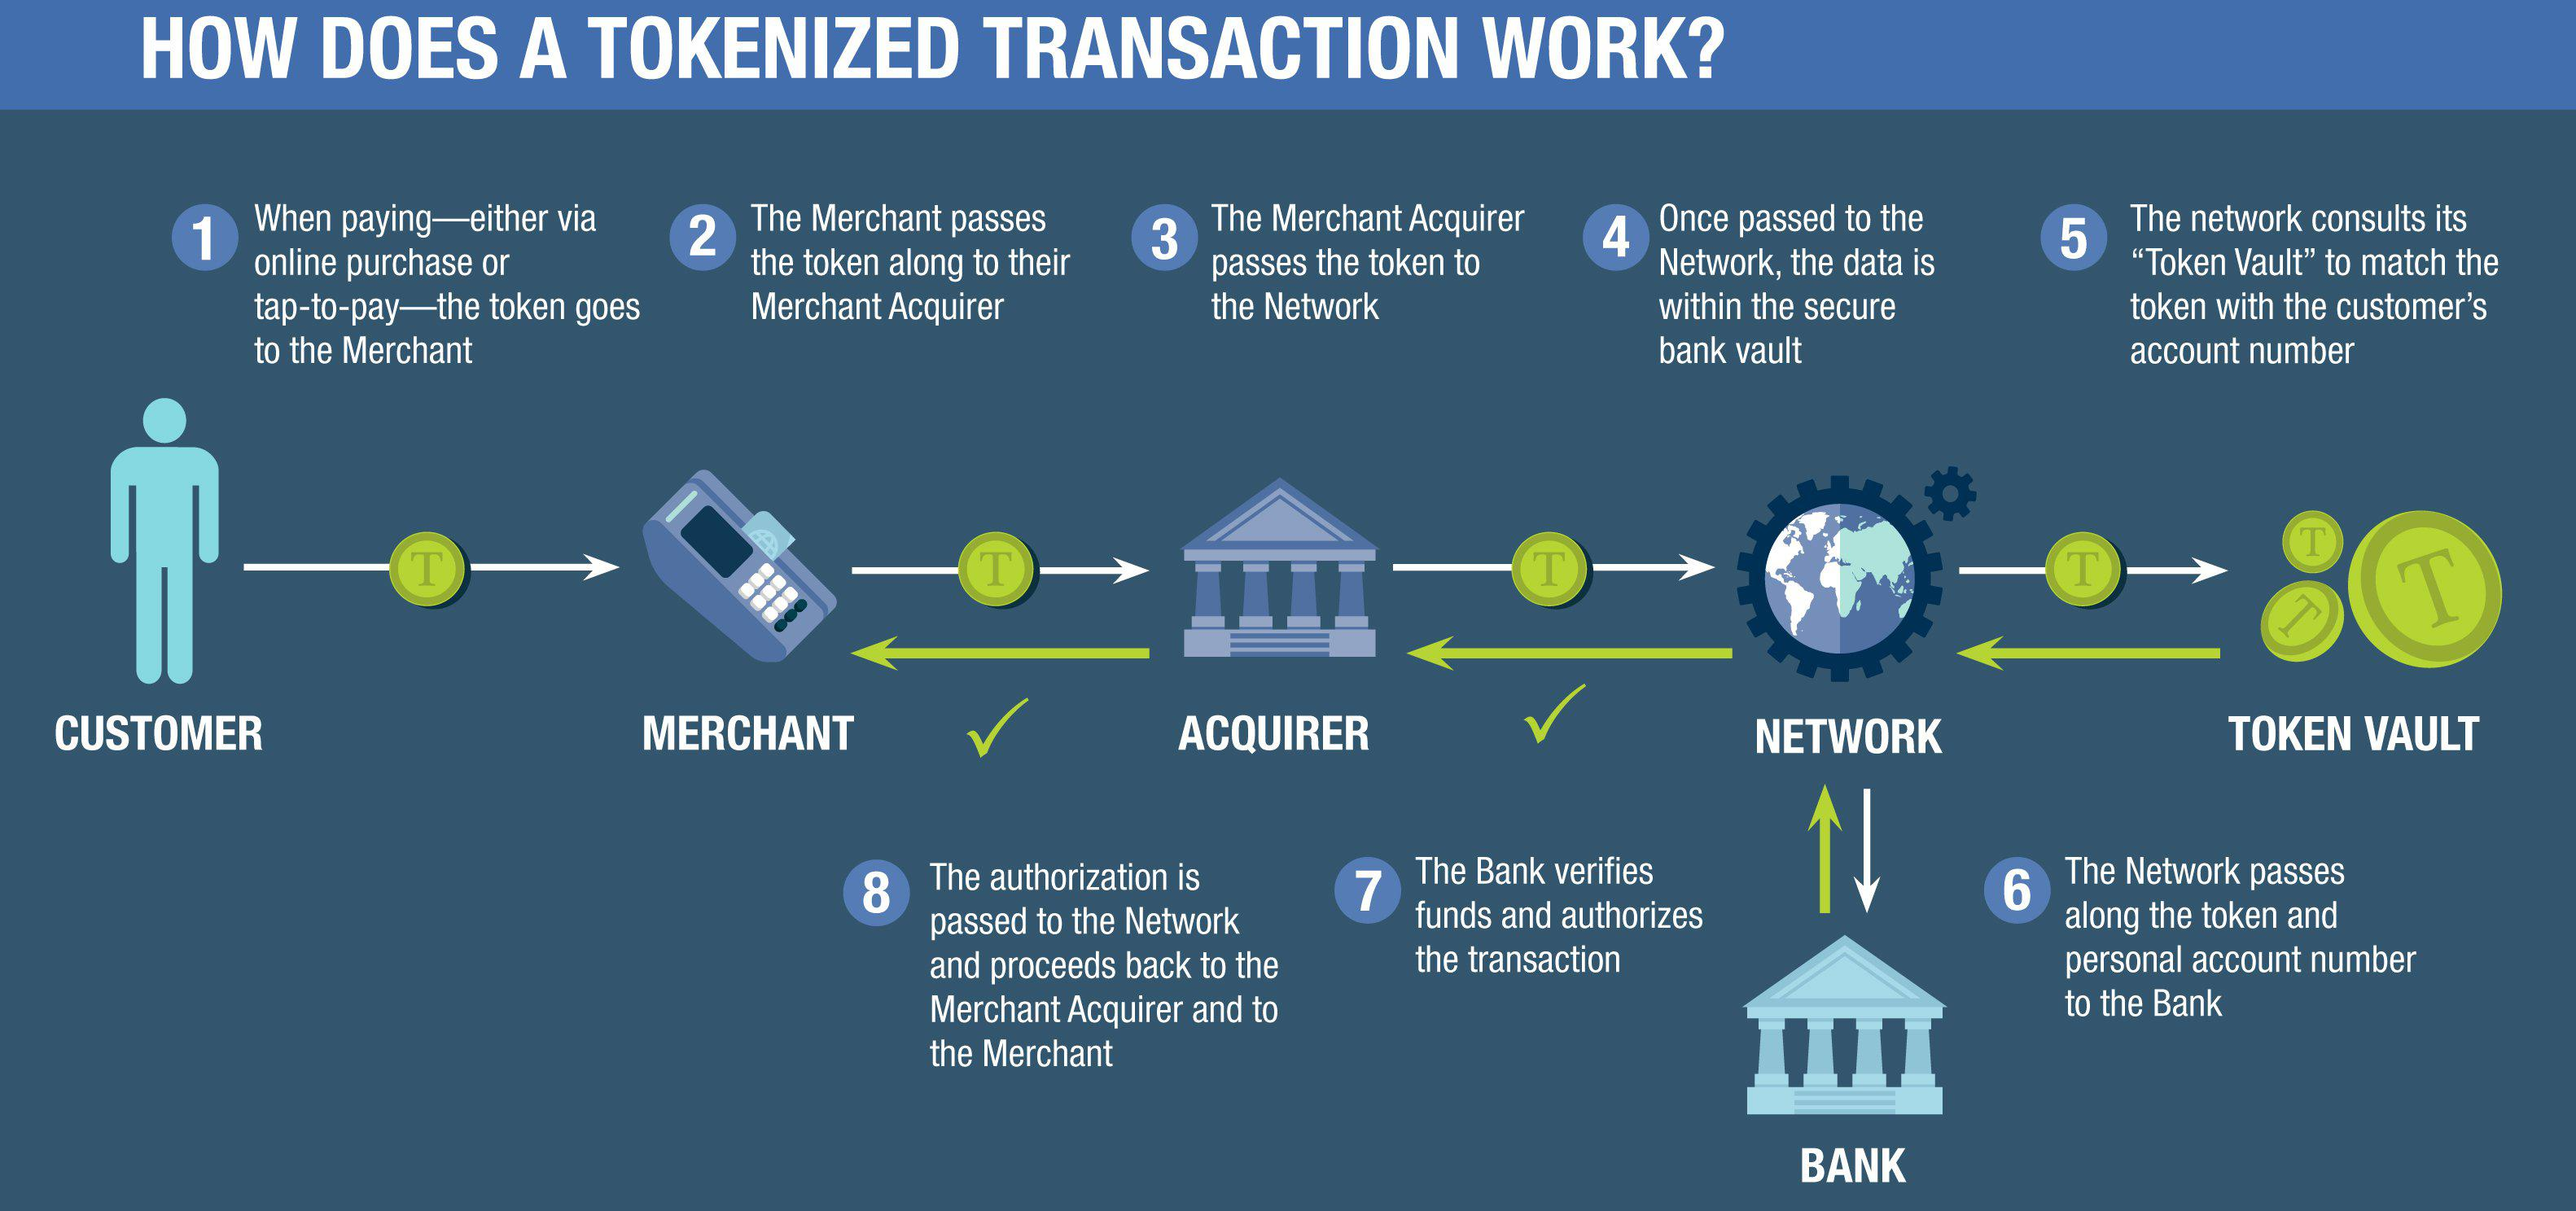 HOW-DOES-A-TOKENIZED-TRANSACTION-WORK.jpg